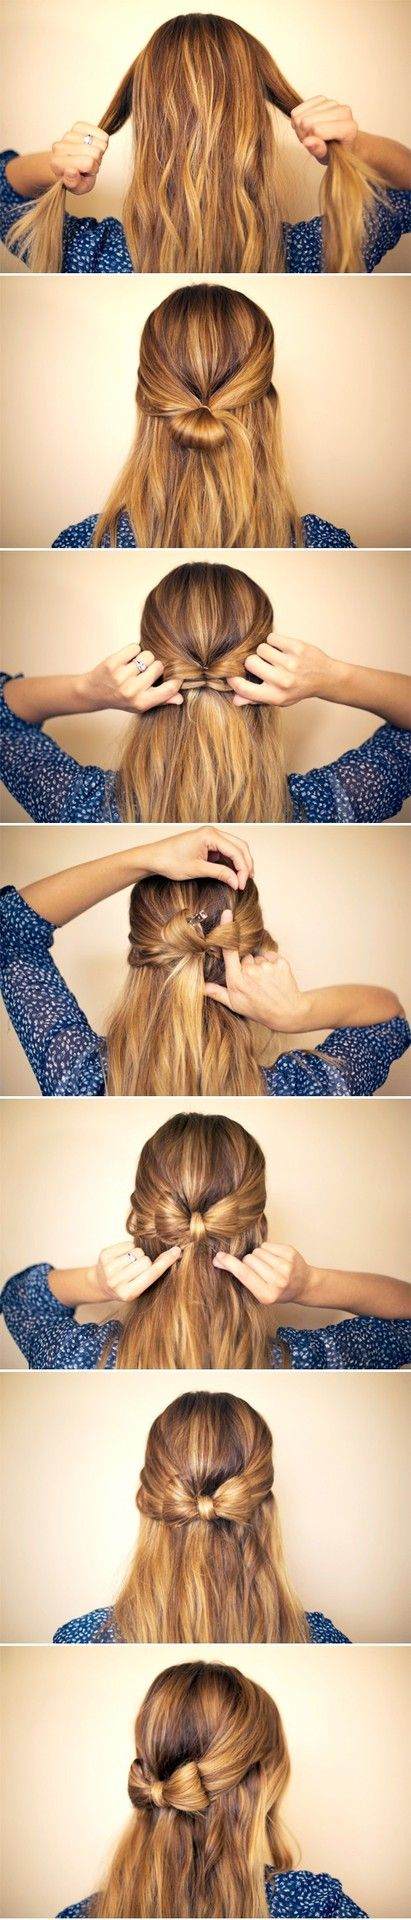 hair bow: Hairbow, Hairdos, Hair Tutorial, Hair Do, Hair Style